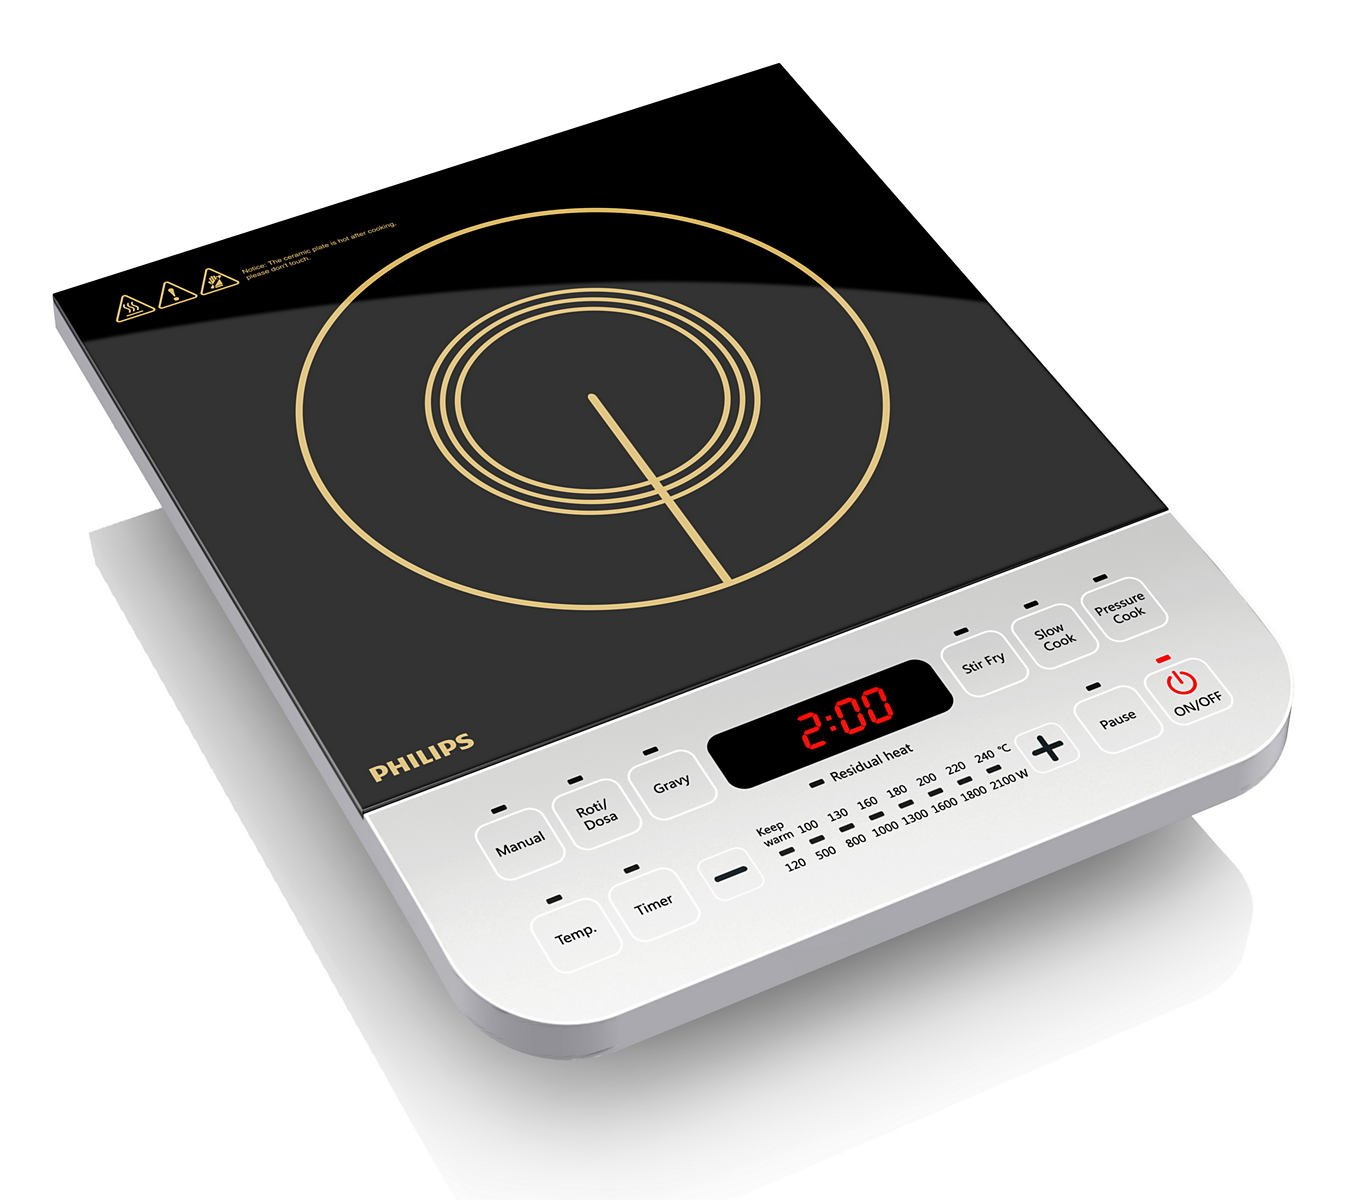 best induction cooktops in india 2018 reviews and compare. Black Bedroom Furniture Sets. Home Design Ideas